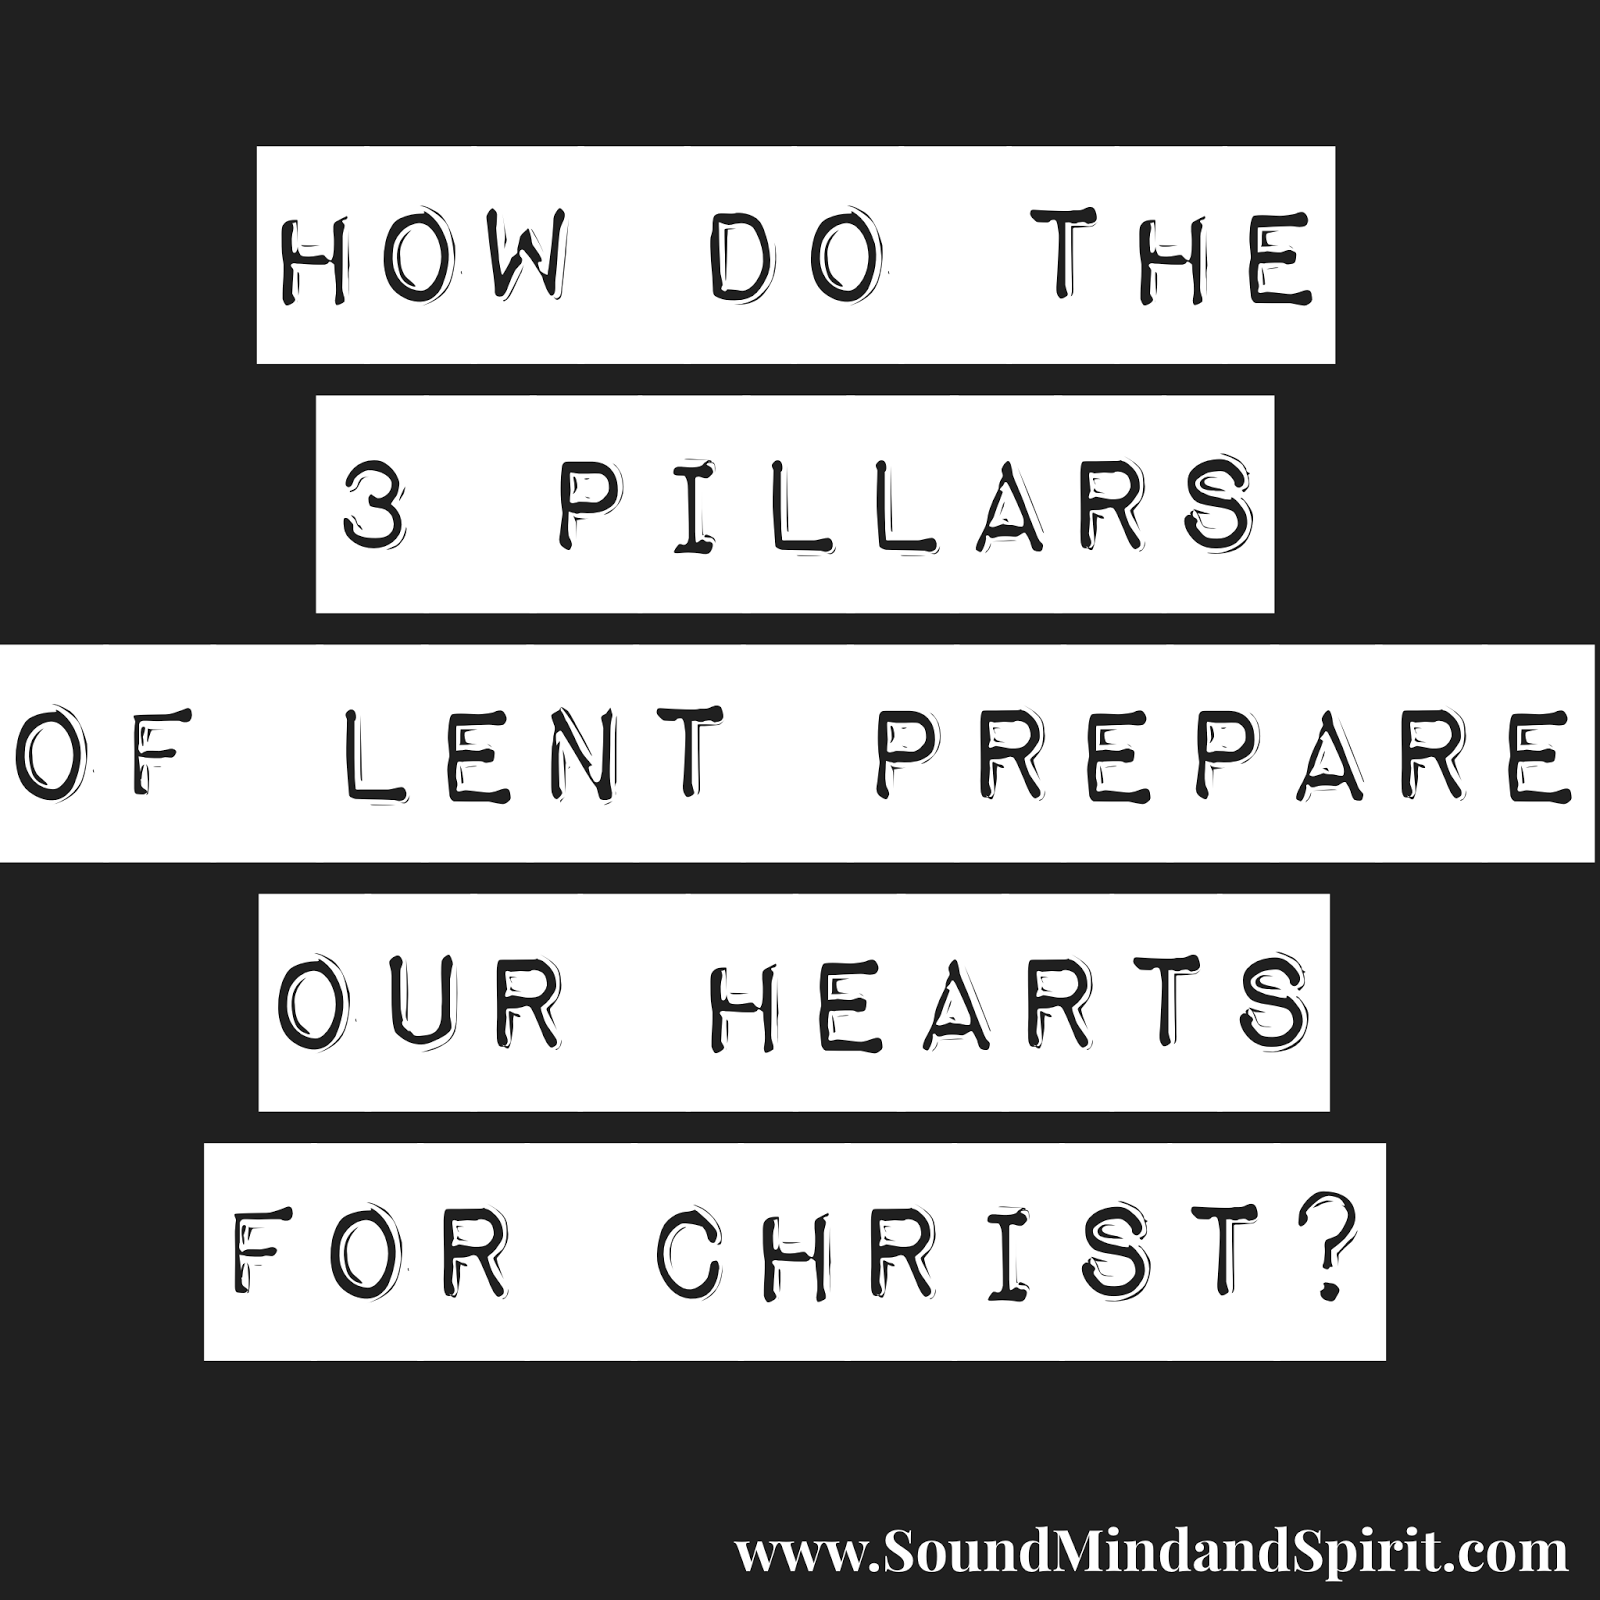 Of Sound Mind And Spirit 3 Pillars Of Lent Prepare Our Hearts For Christ